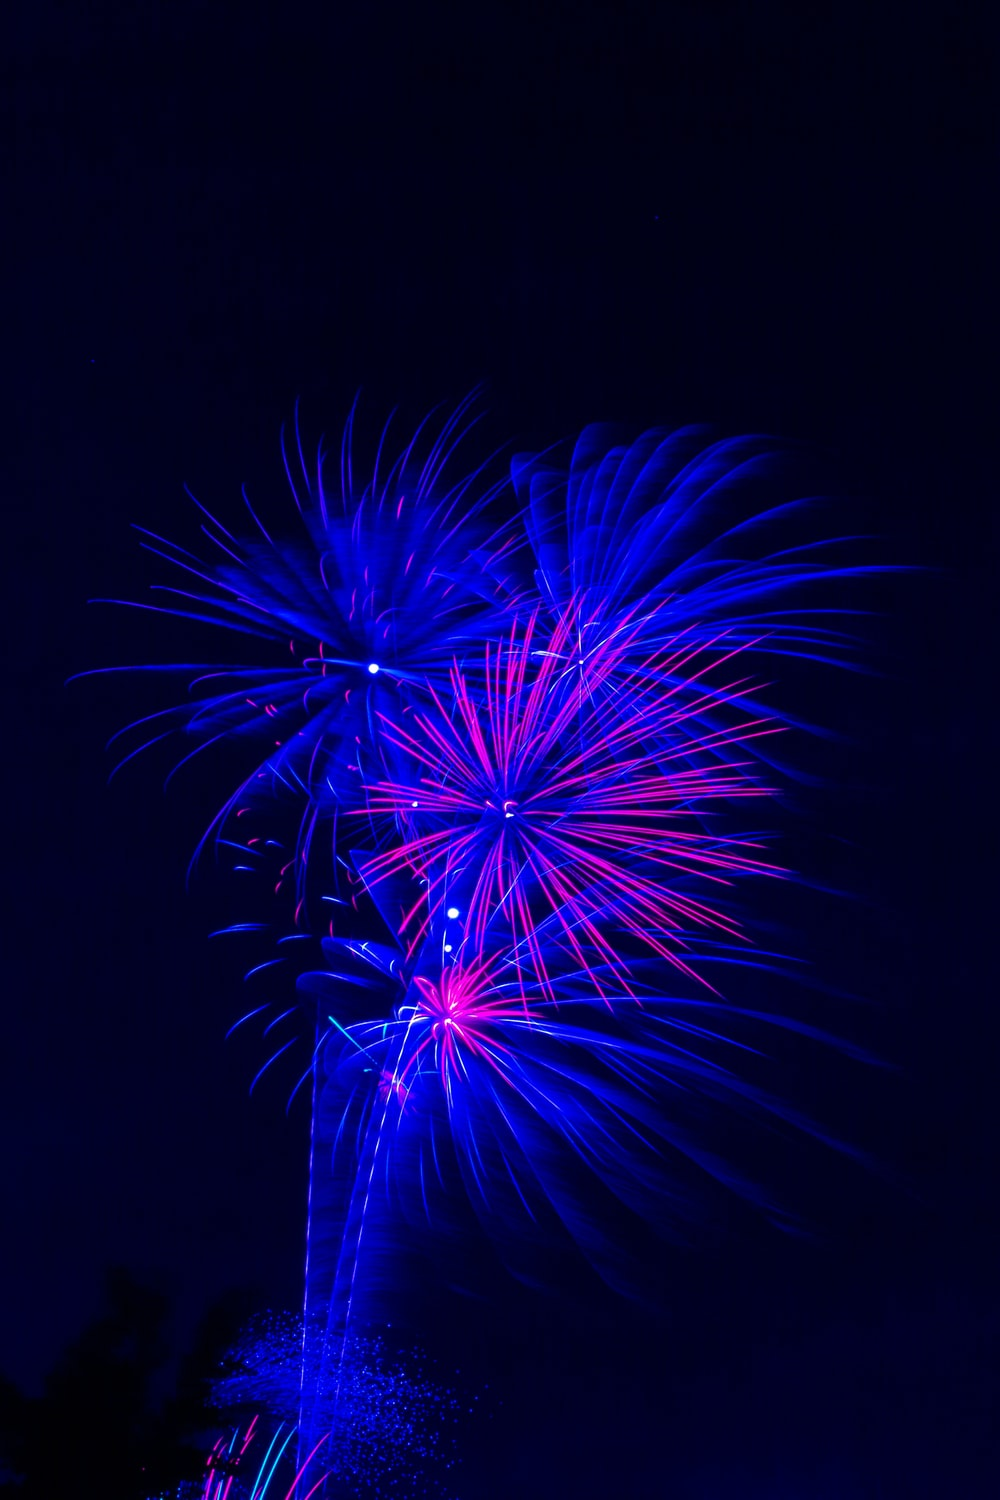 blue and pink fireworks